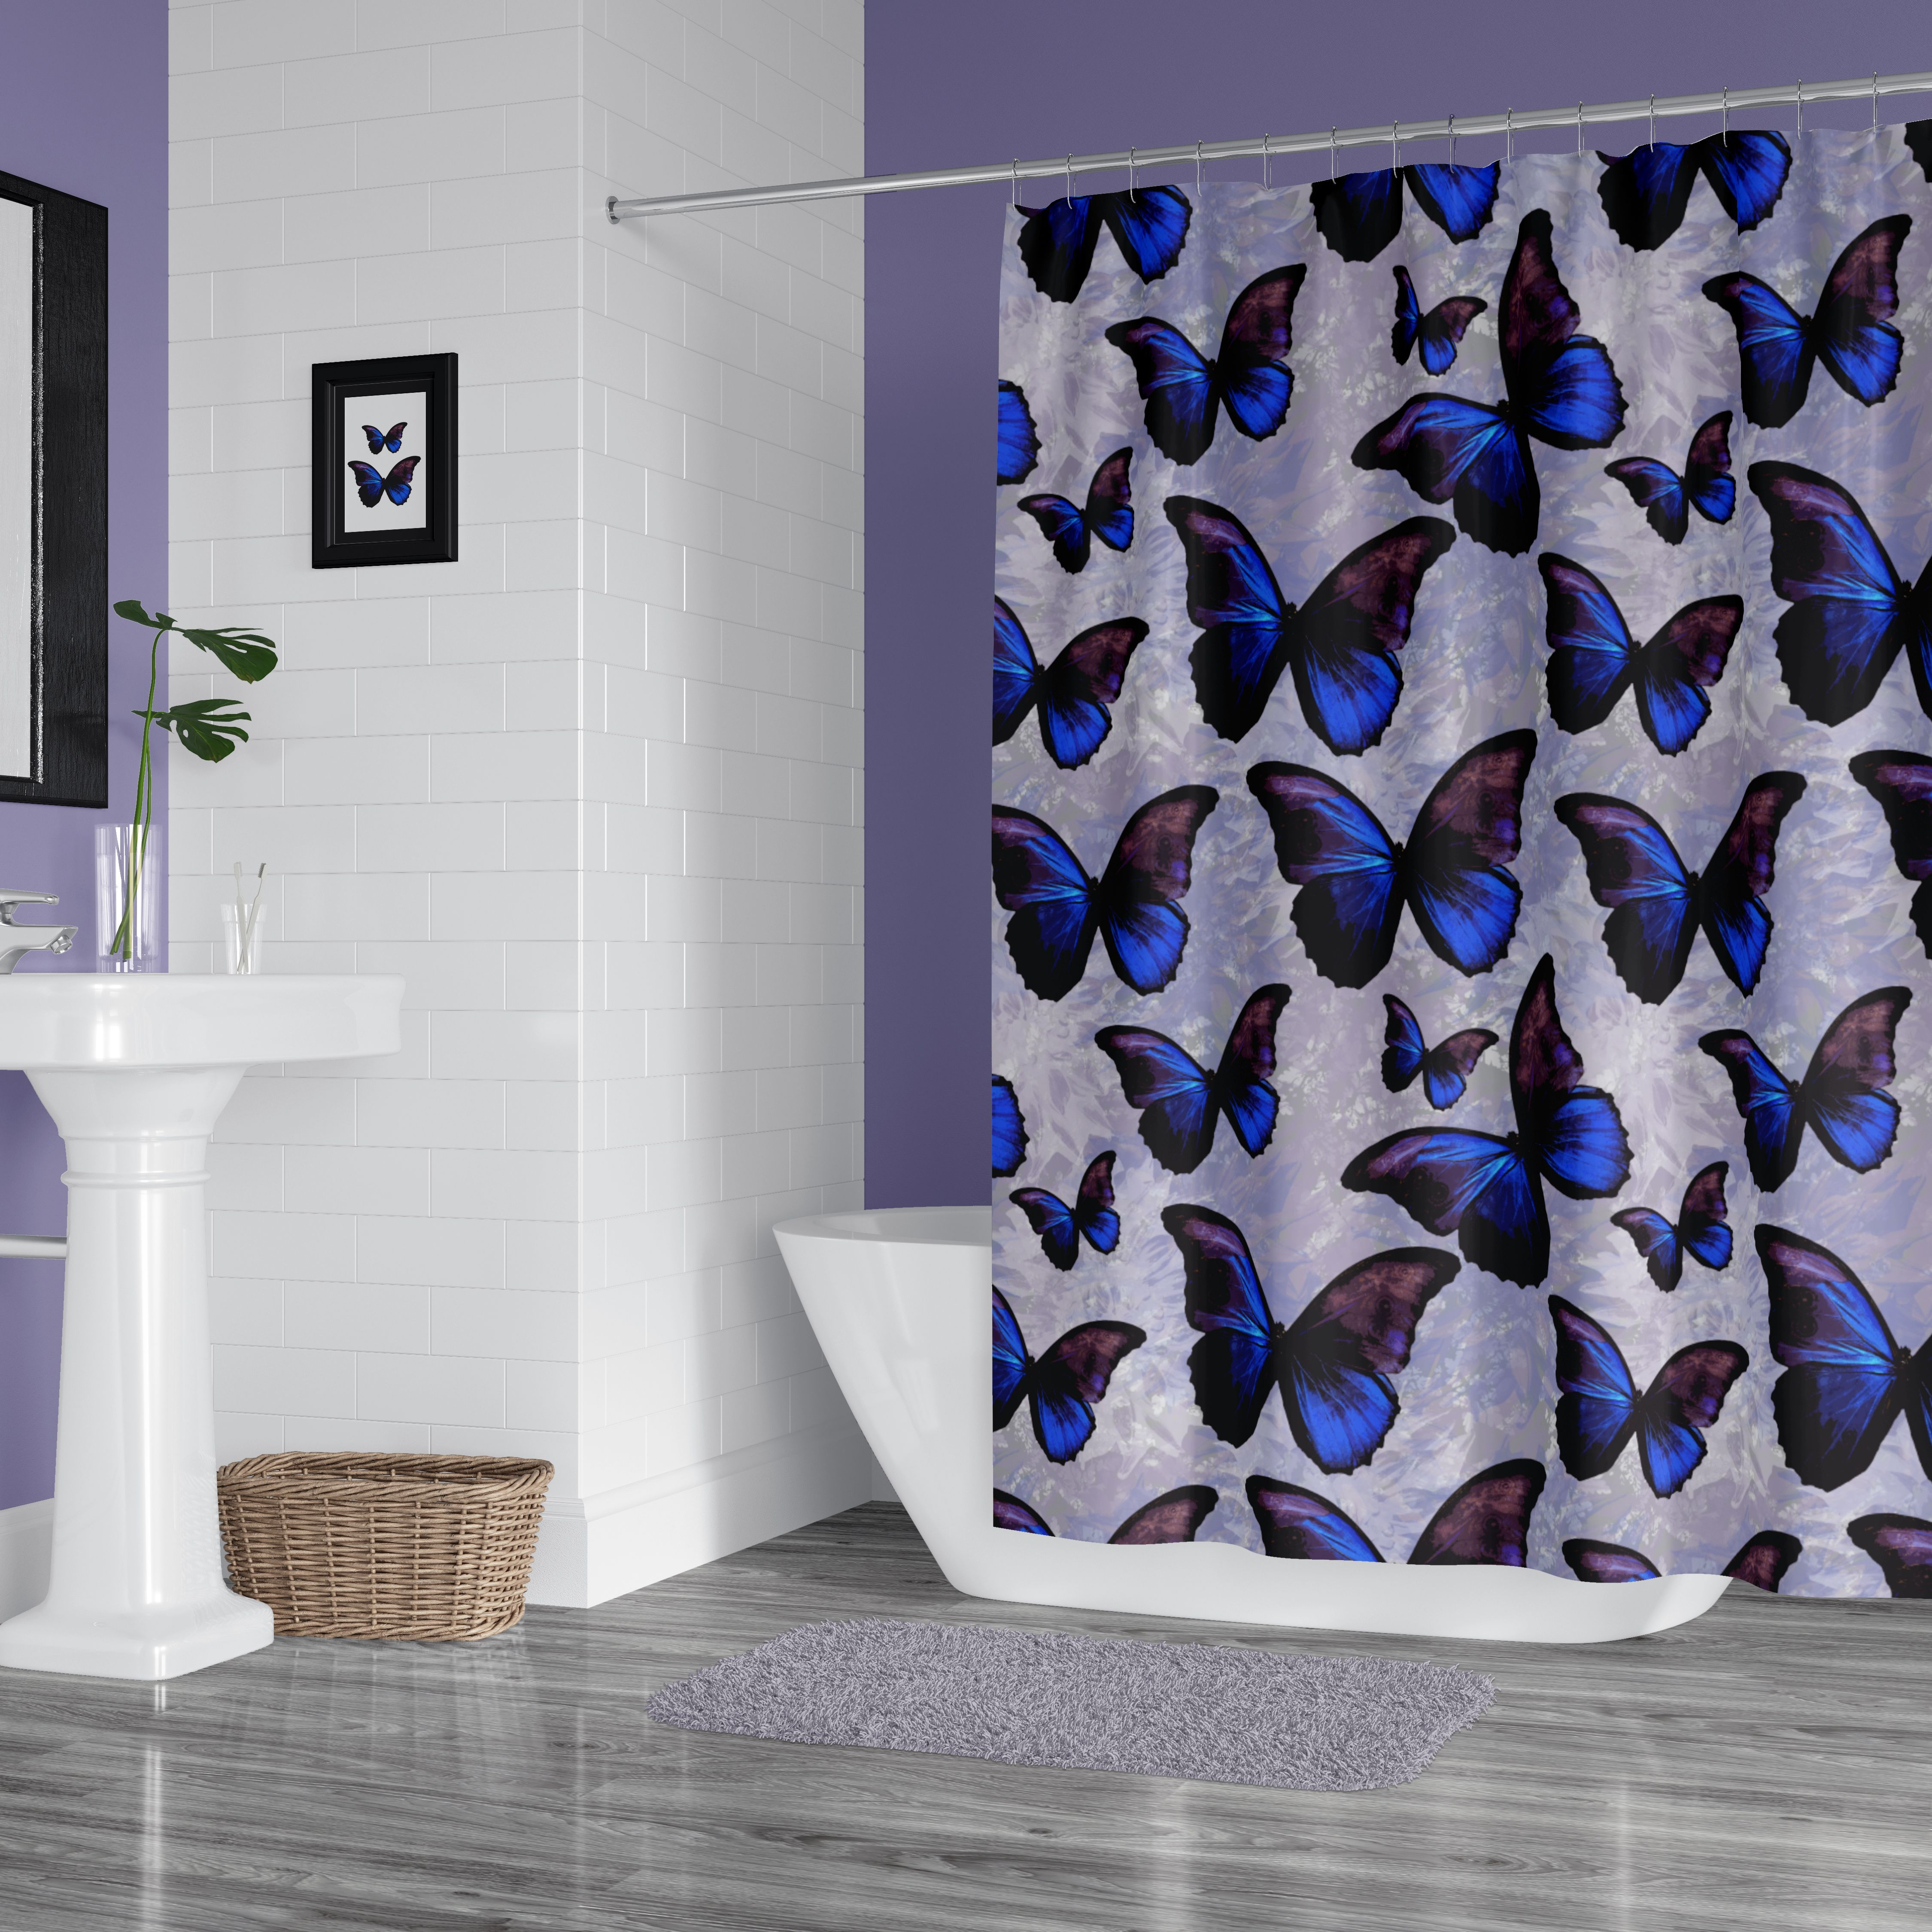 I Love Morpho Butterflies And How This Bathroom Is Designed To